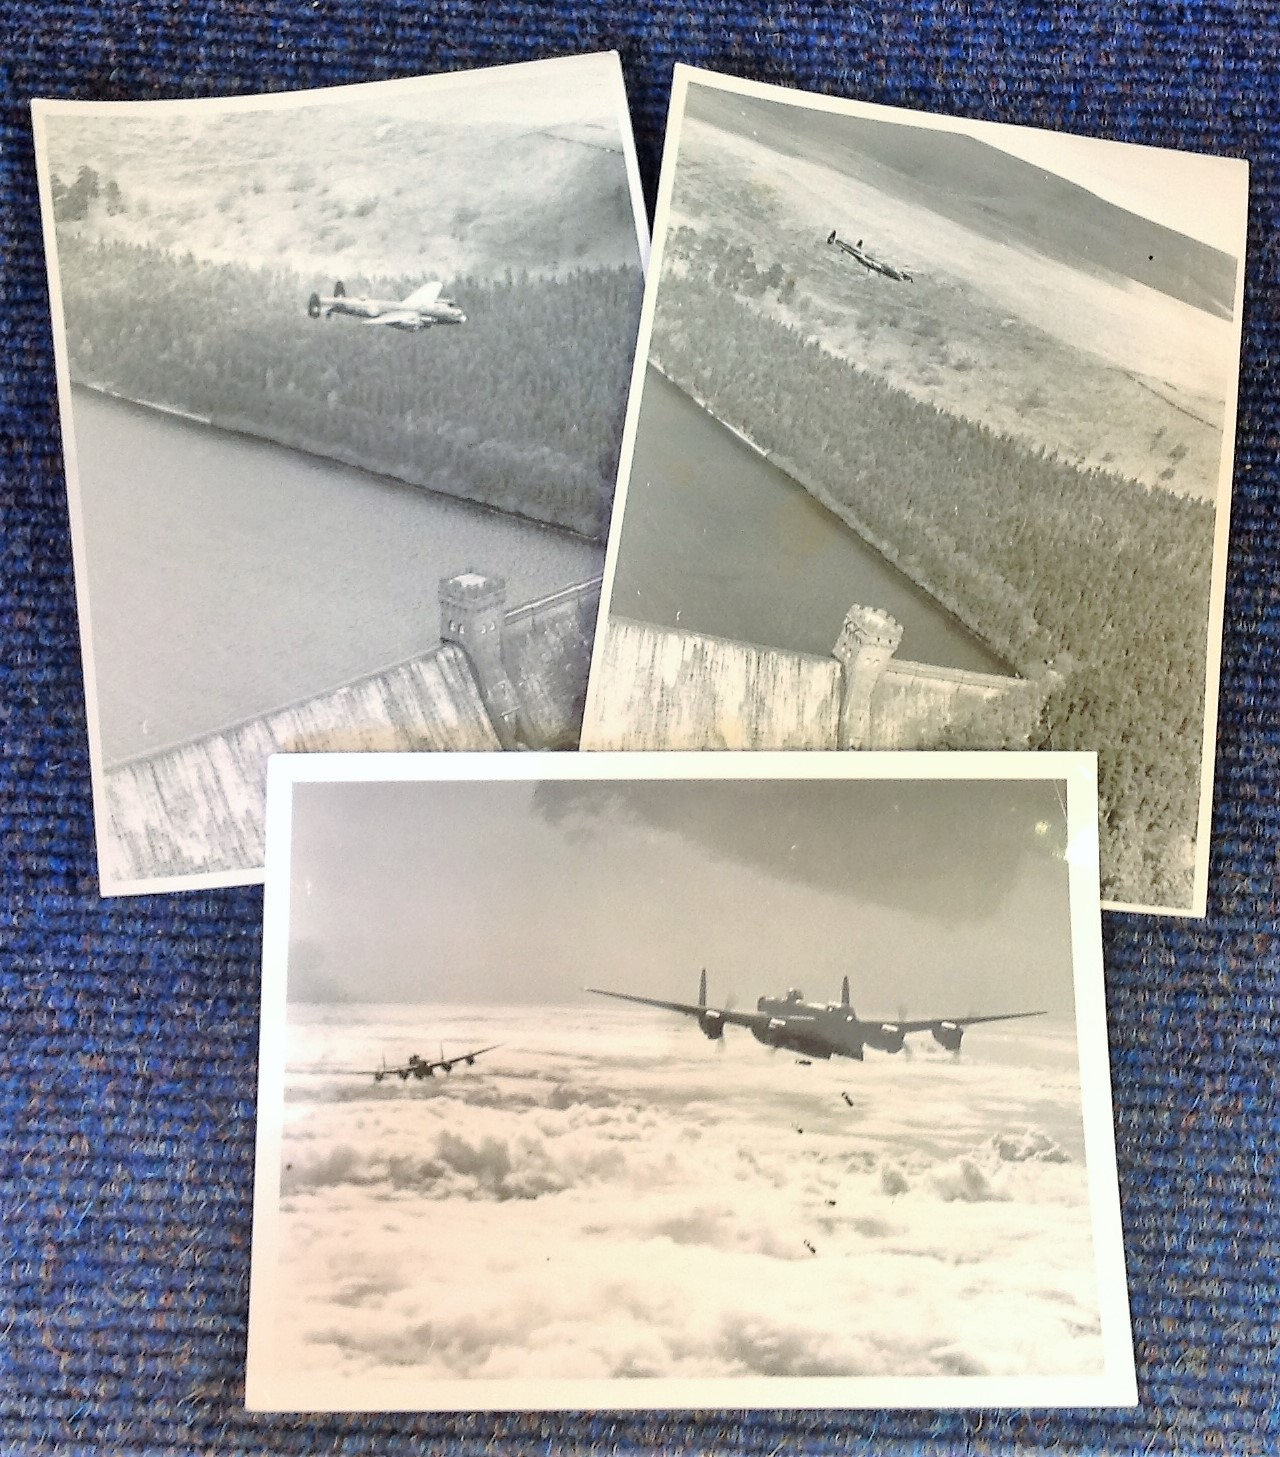 Lot 23 - World War Two collection three 7x9 b/w photos picturing Lancasters on training runs during World War